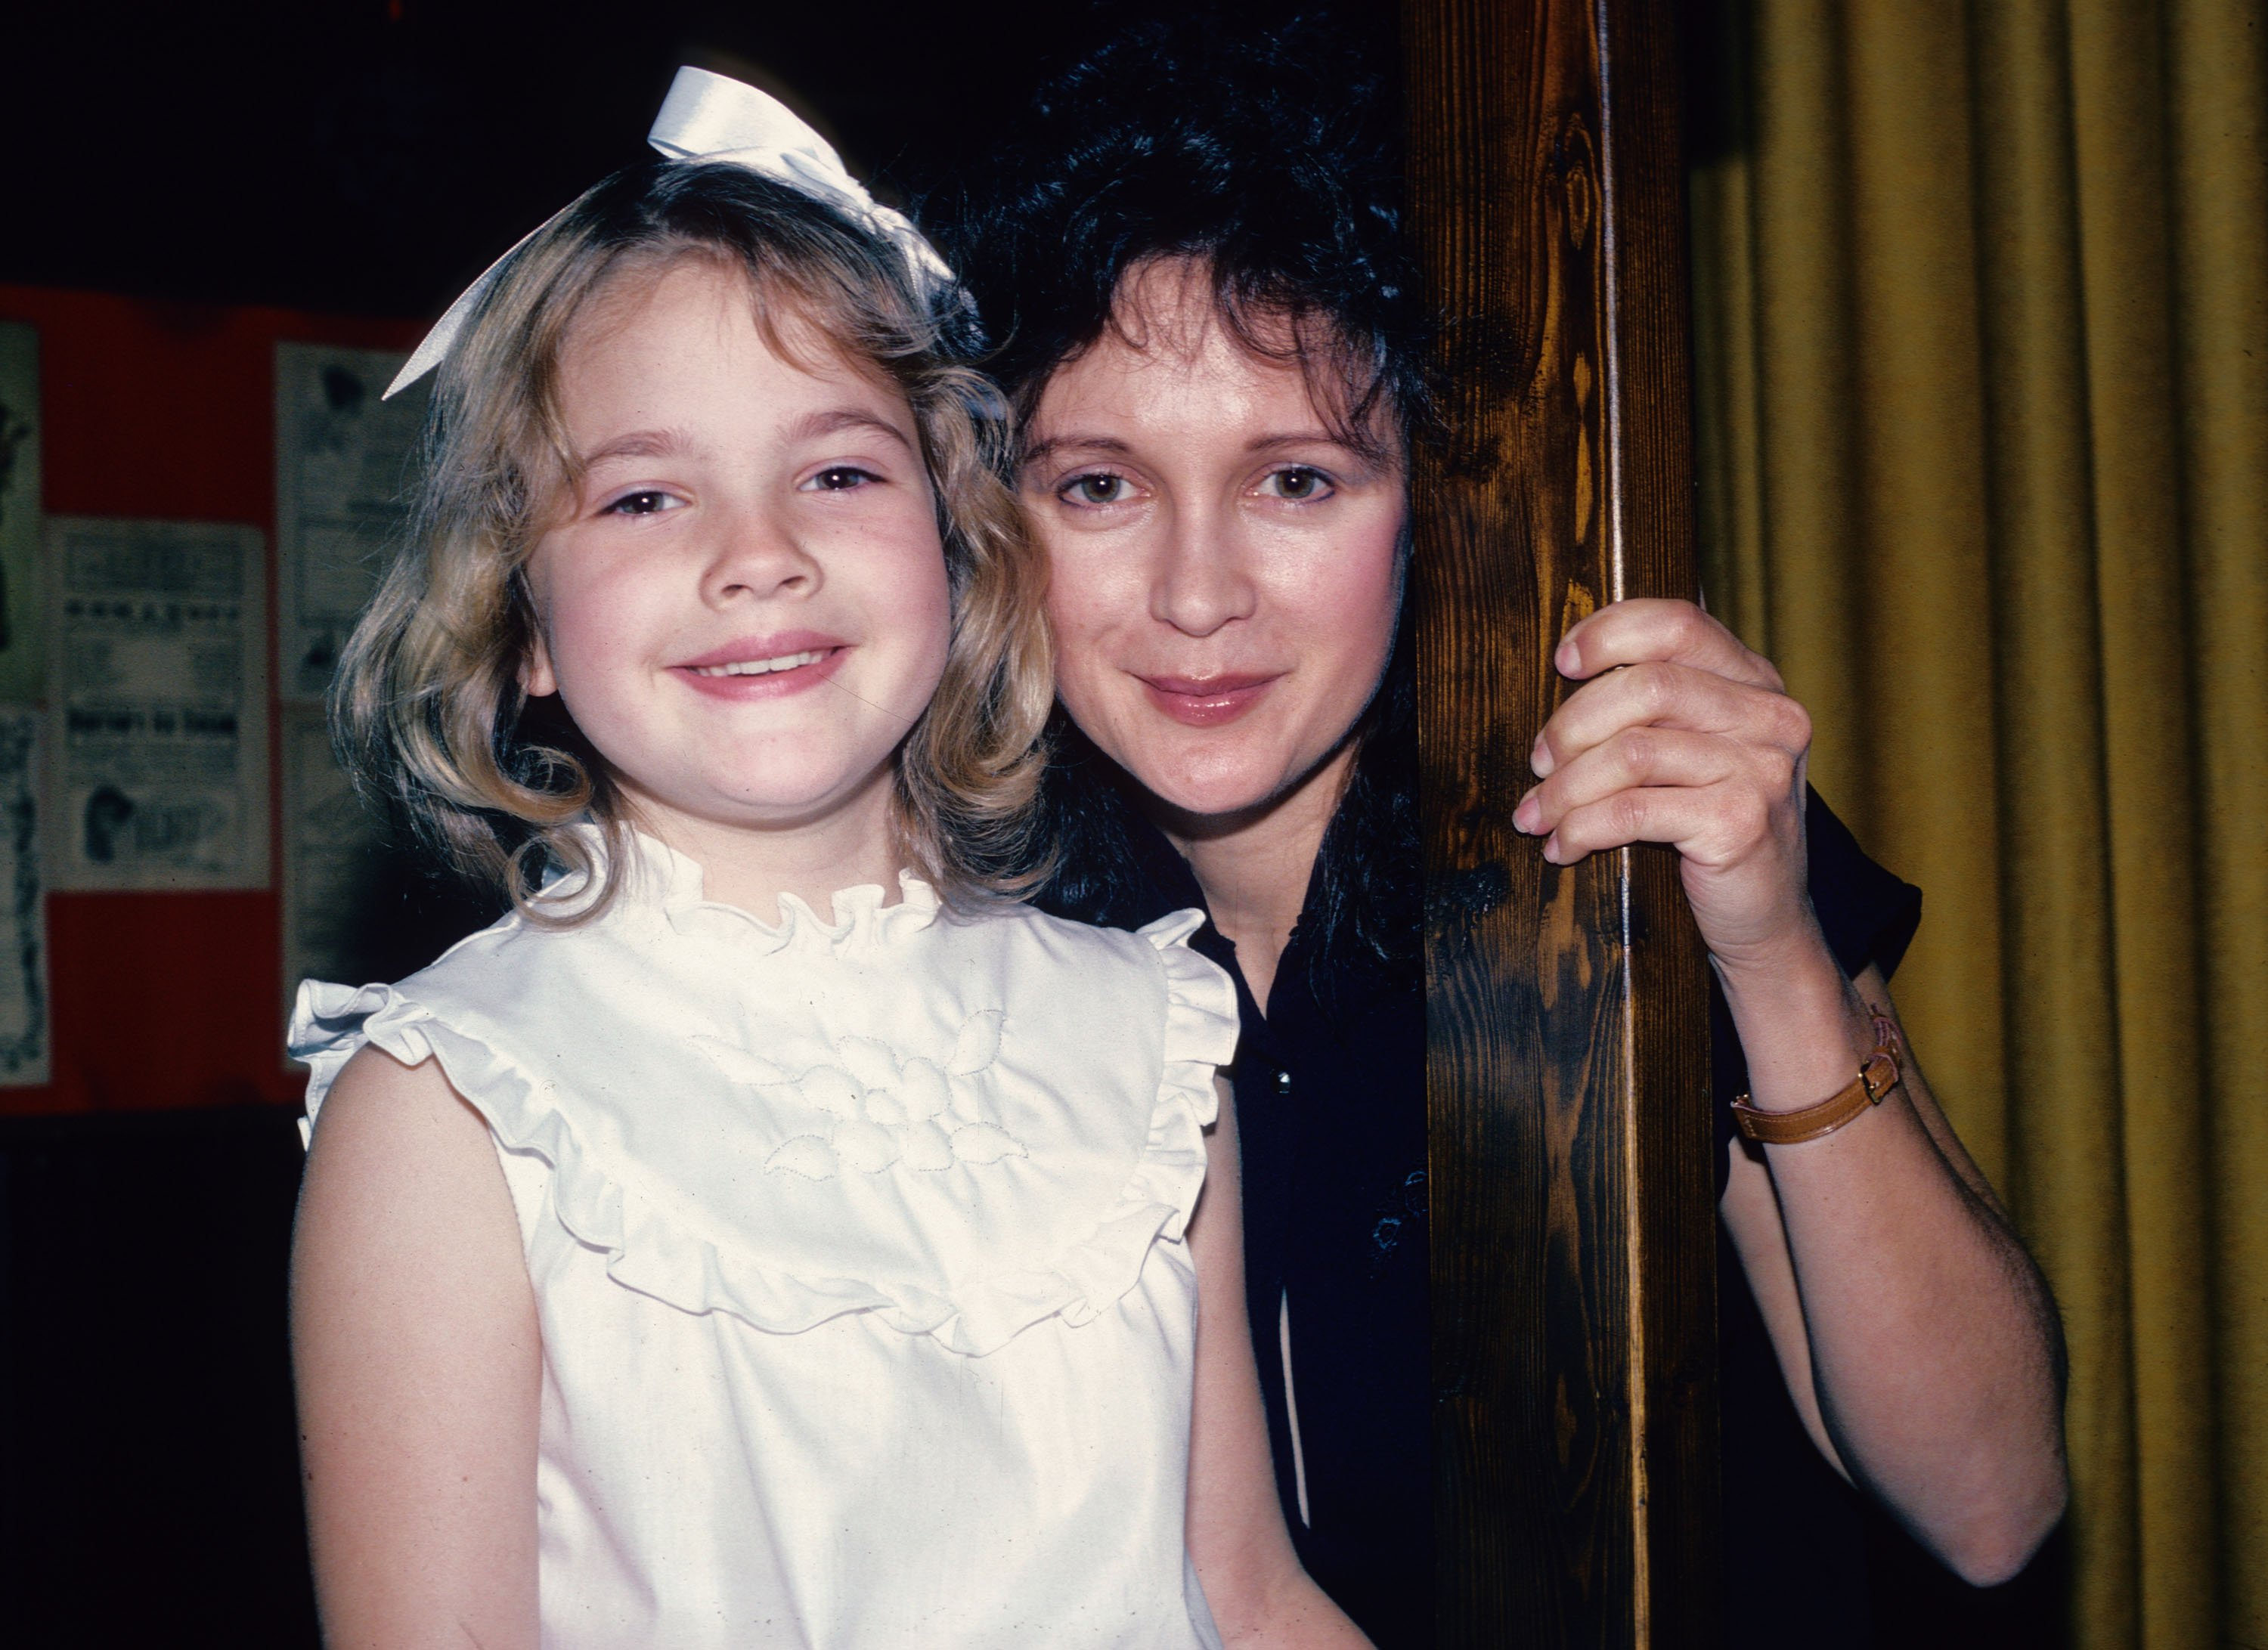 Drew Barrymore poses for a photograph June 8, 1982 with her mother Jaid Barrymore in New York City | Photo: Getty Images